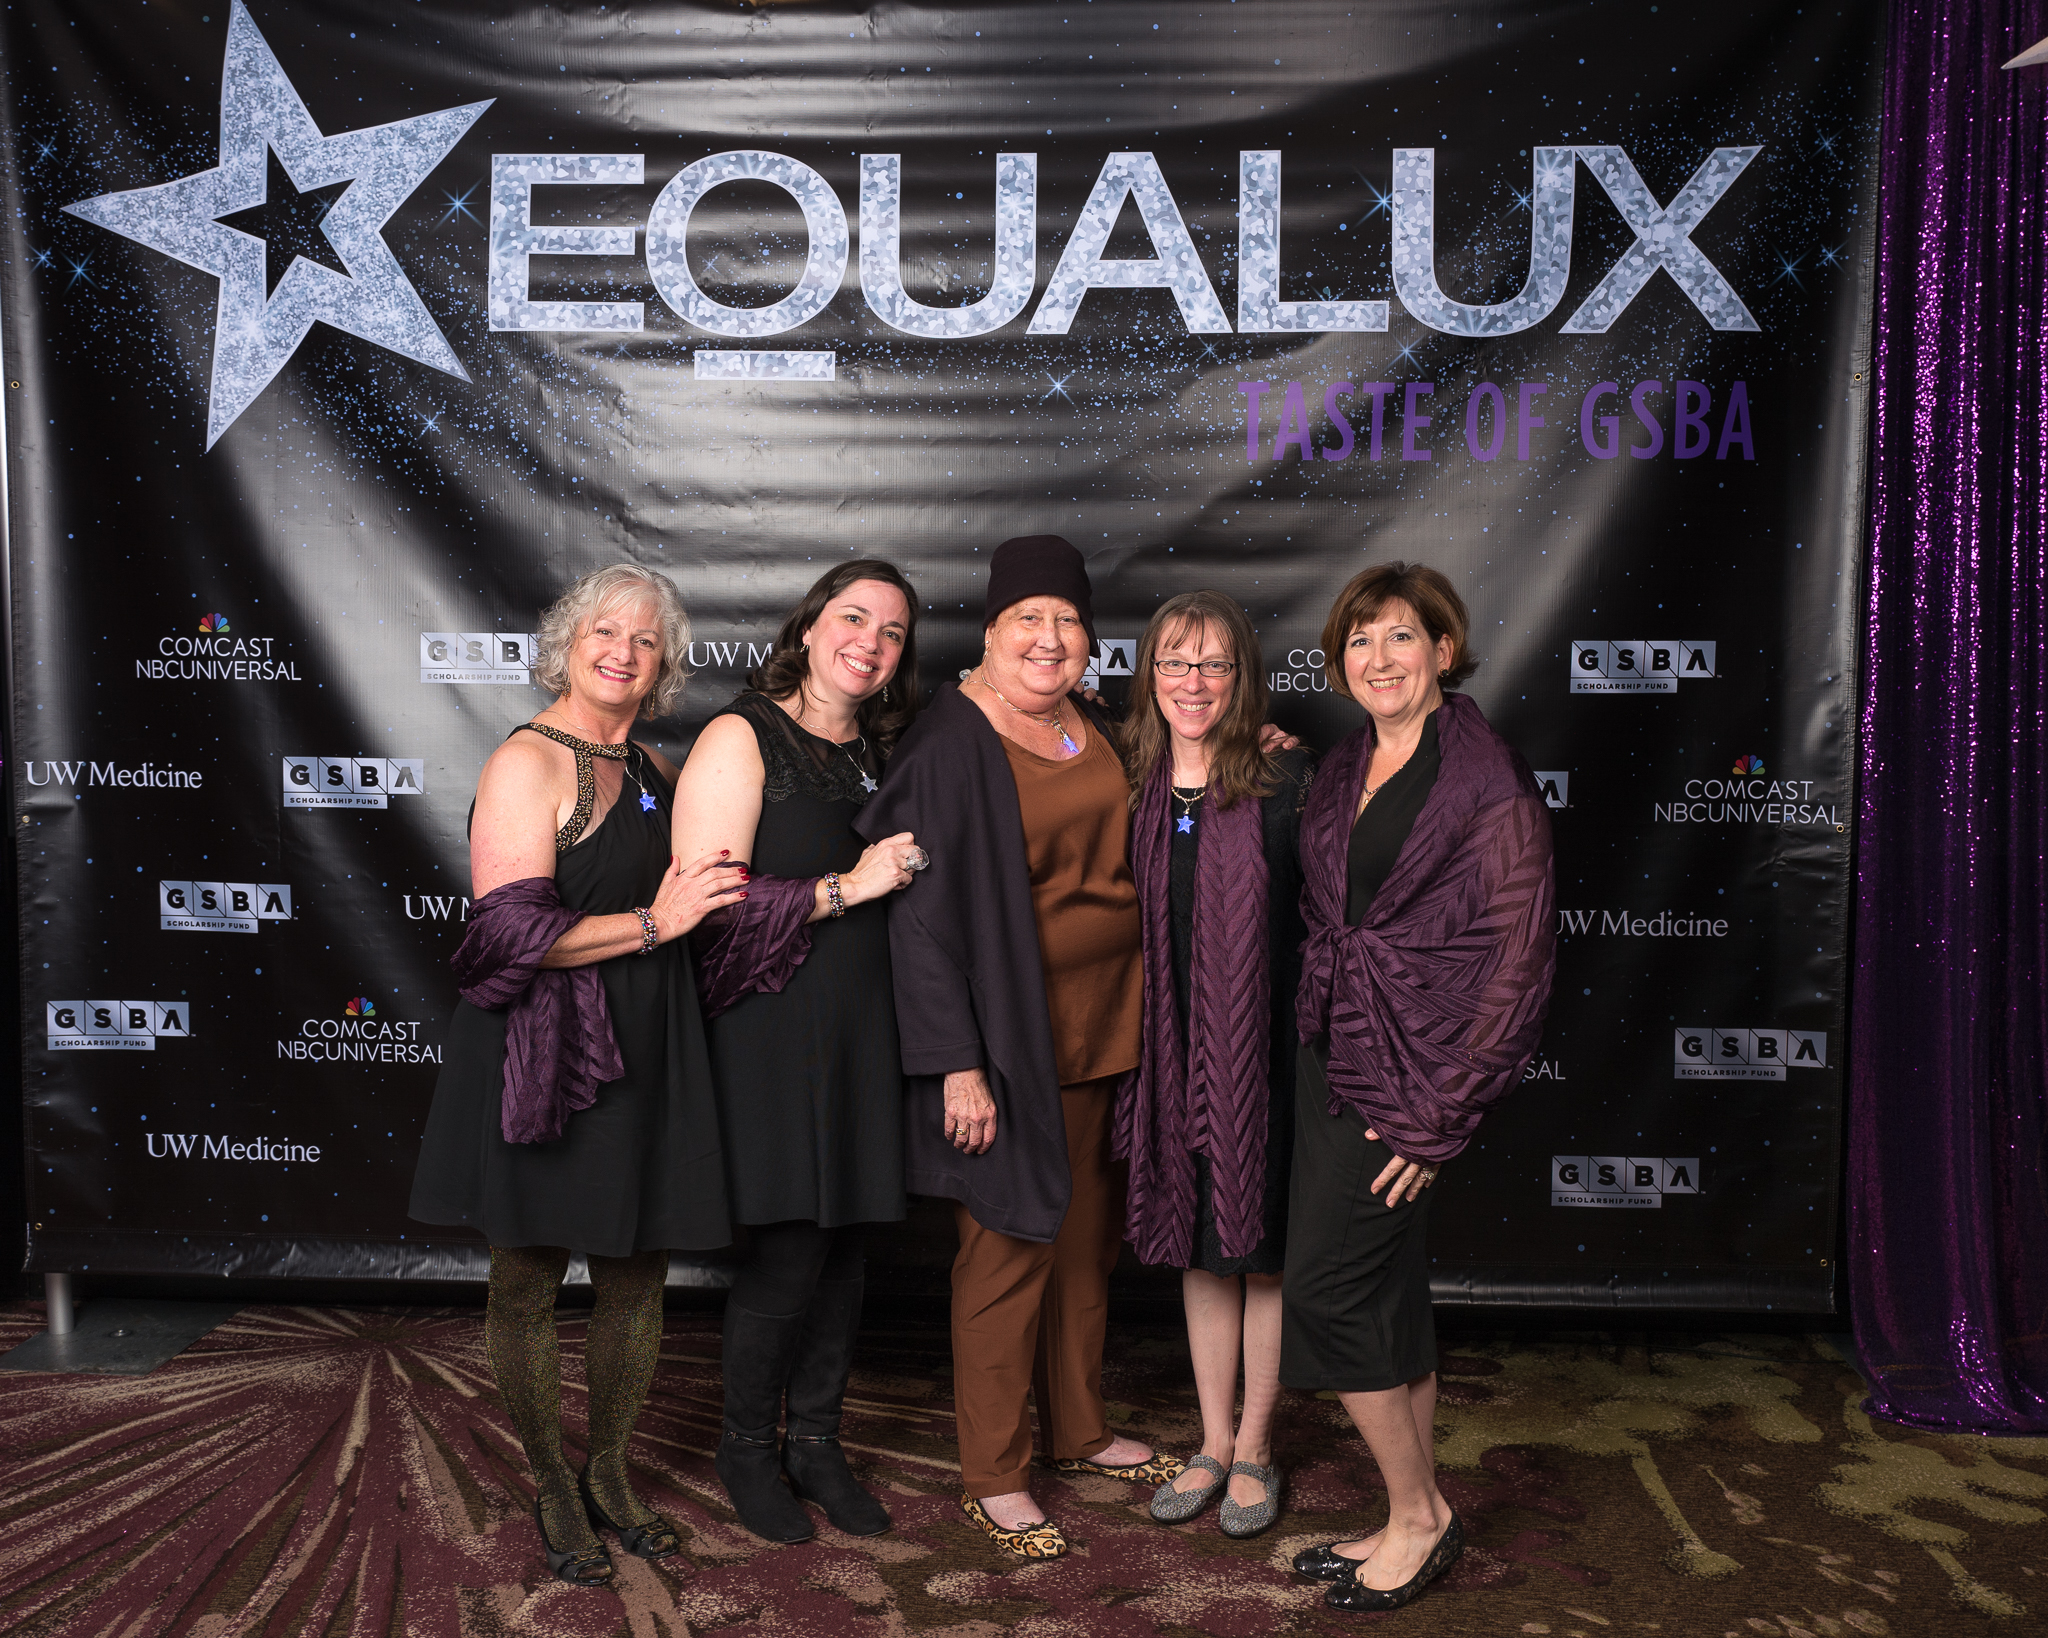 111718_GSBA EQUALUX at The Westin Seattle (Credit- Nate Gowdy)-52.jpg